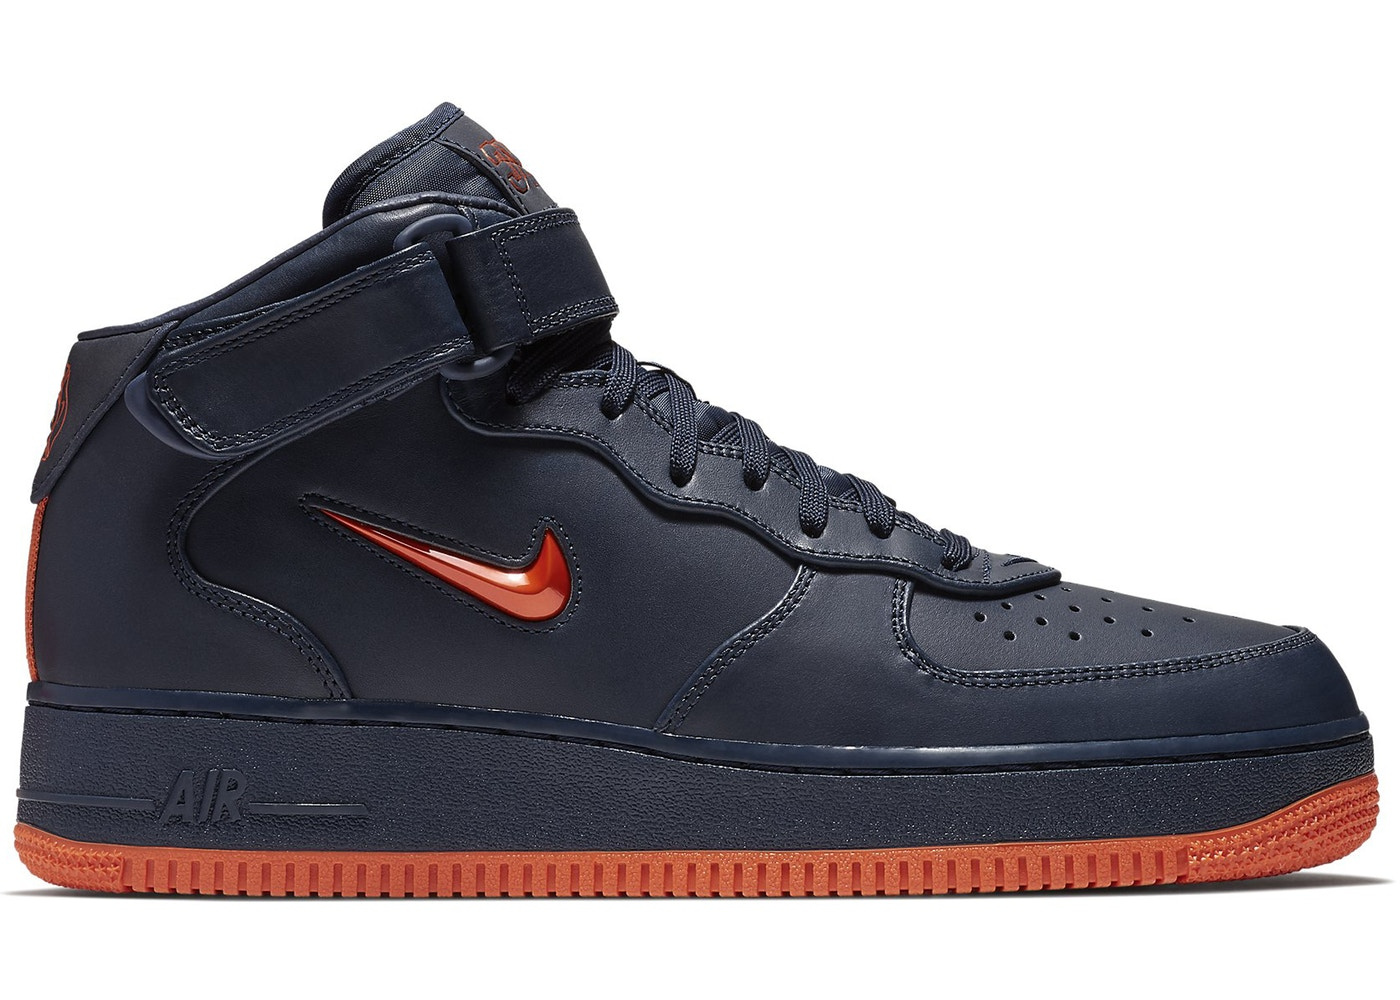 Nyc Obsidian Mid Orange Air 1 Force b7I6Ygymfv